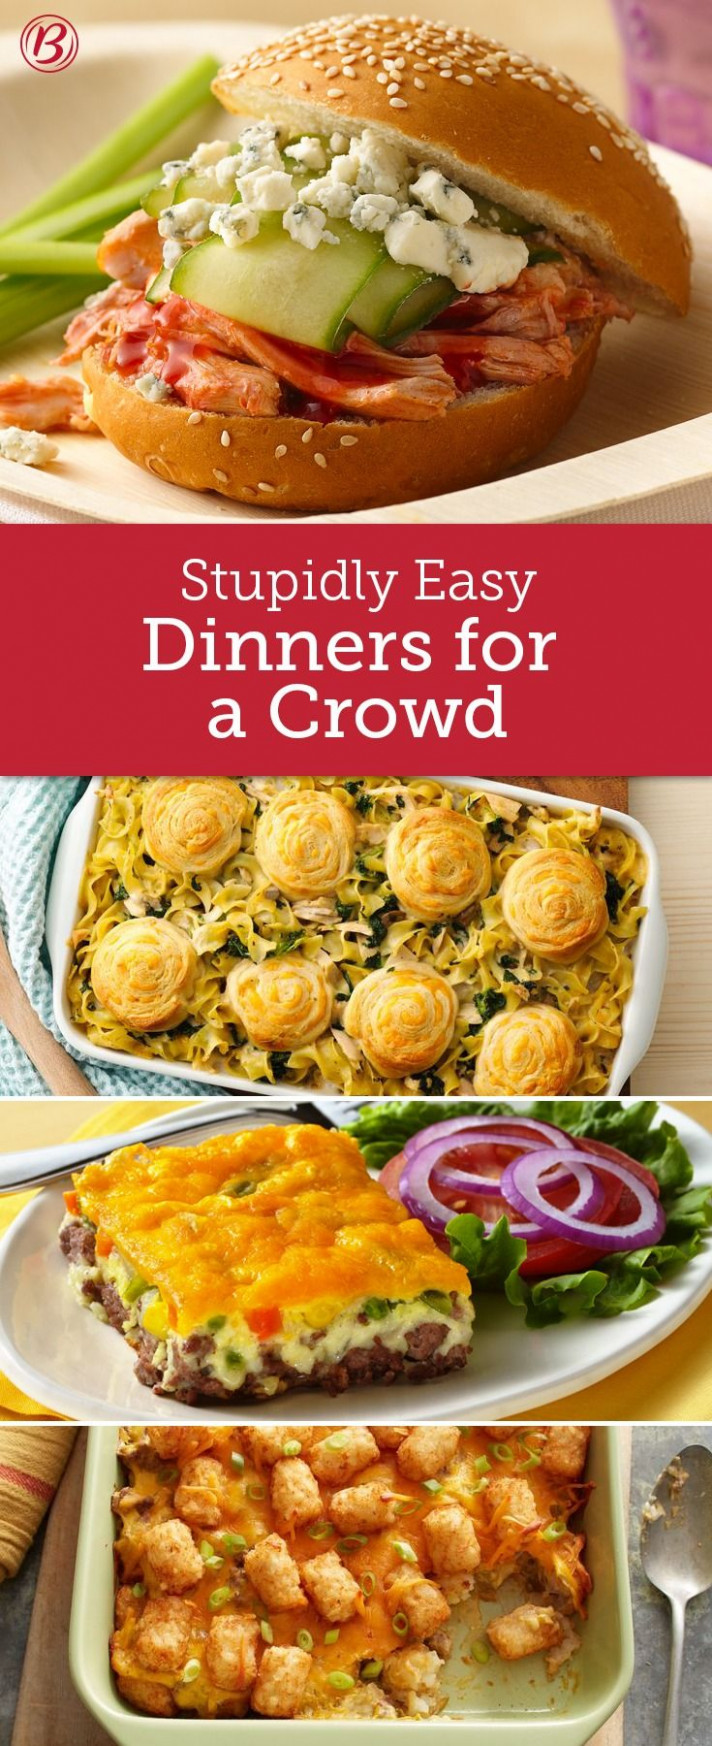 Easy Crowd-Size Dinners | Cooking for a crowd, Meals, Food ..